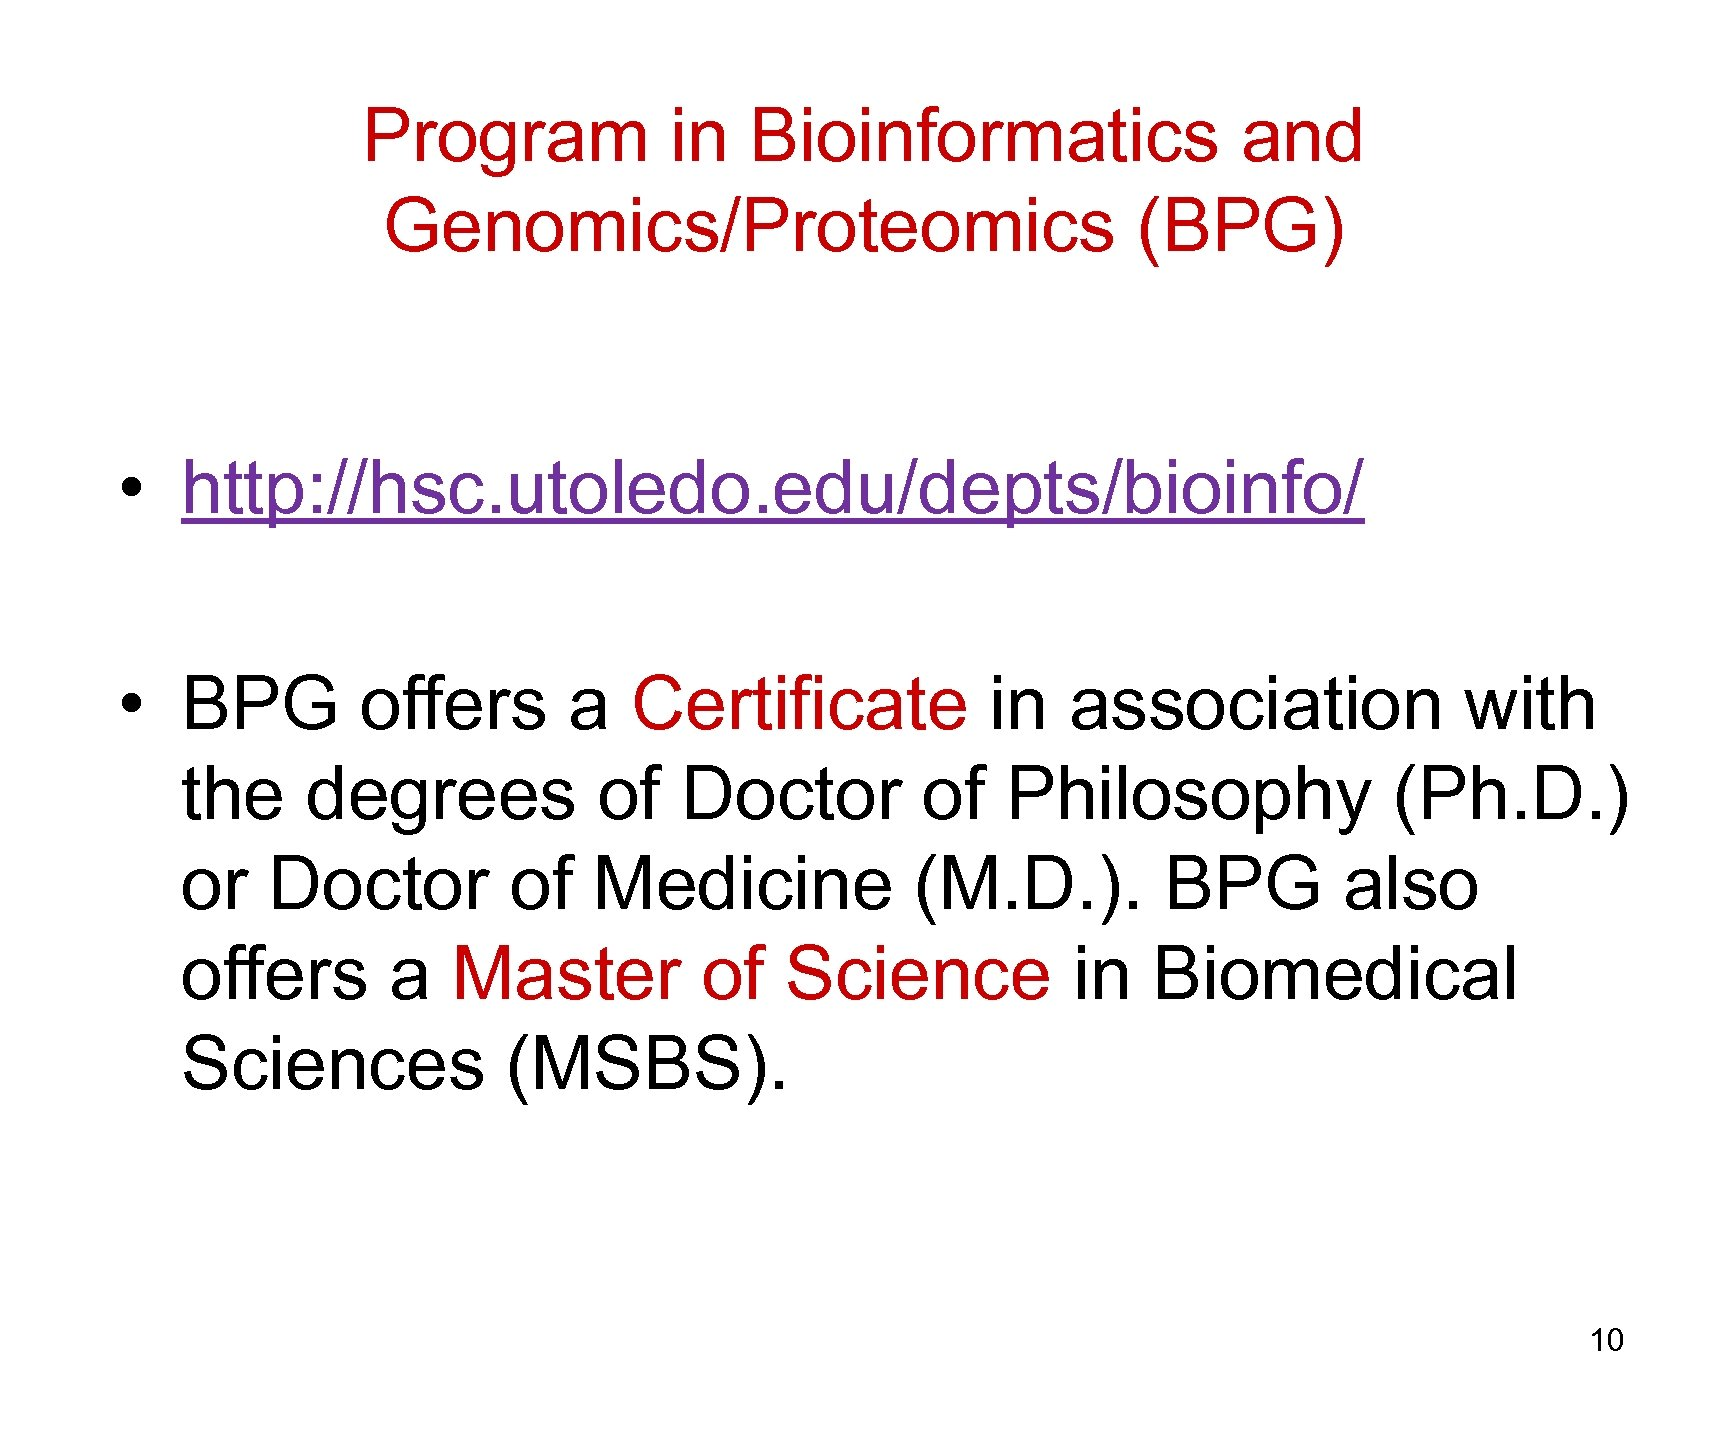 Program in Bioinformatics and Genomics/Proteomics (BPG) • http: //hsc. utoledo. edu/depts/bioinfo/ • BPG offers